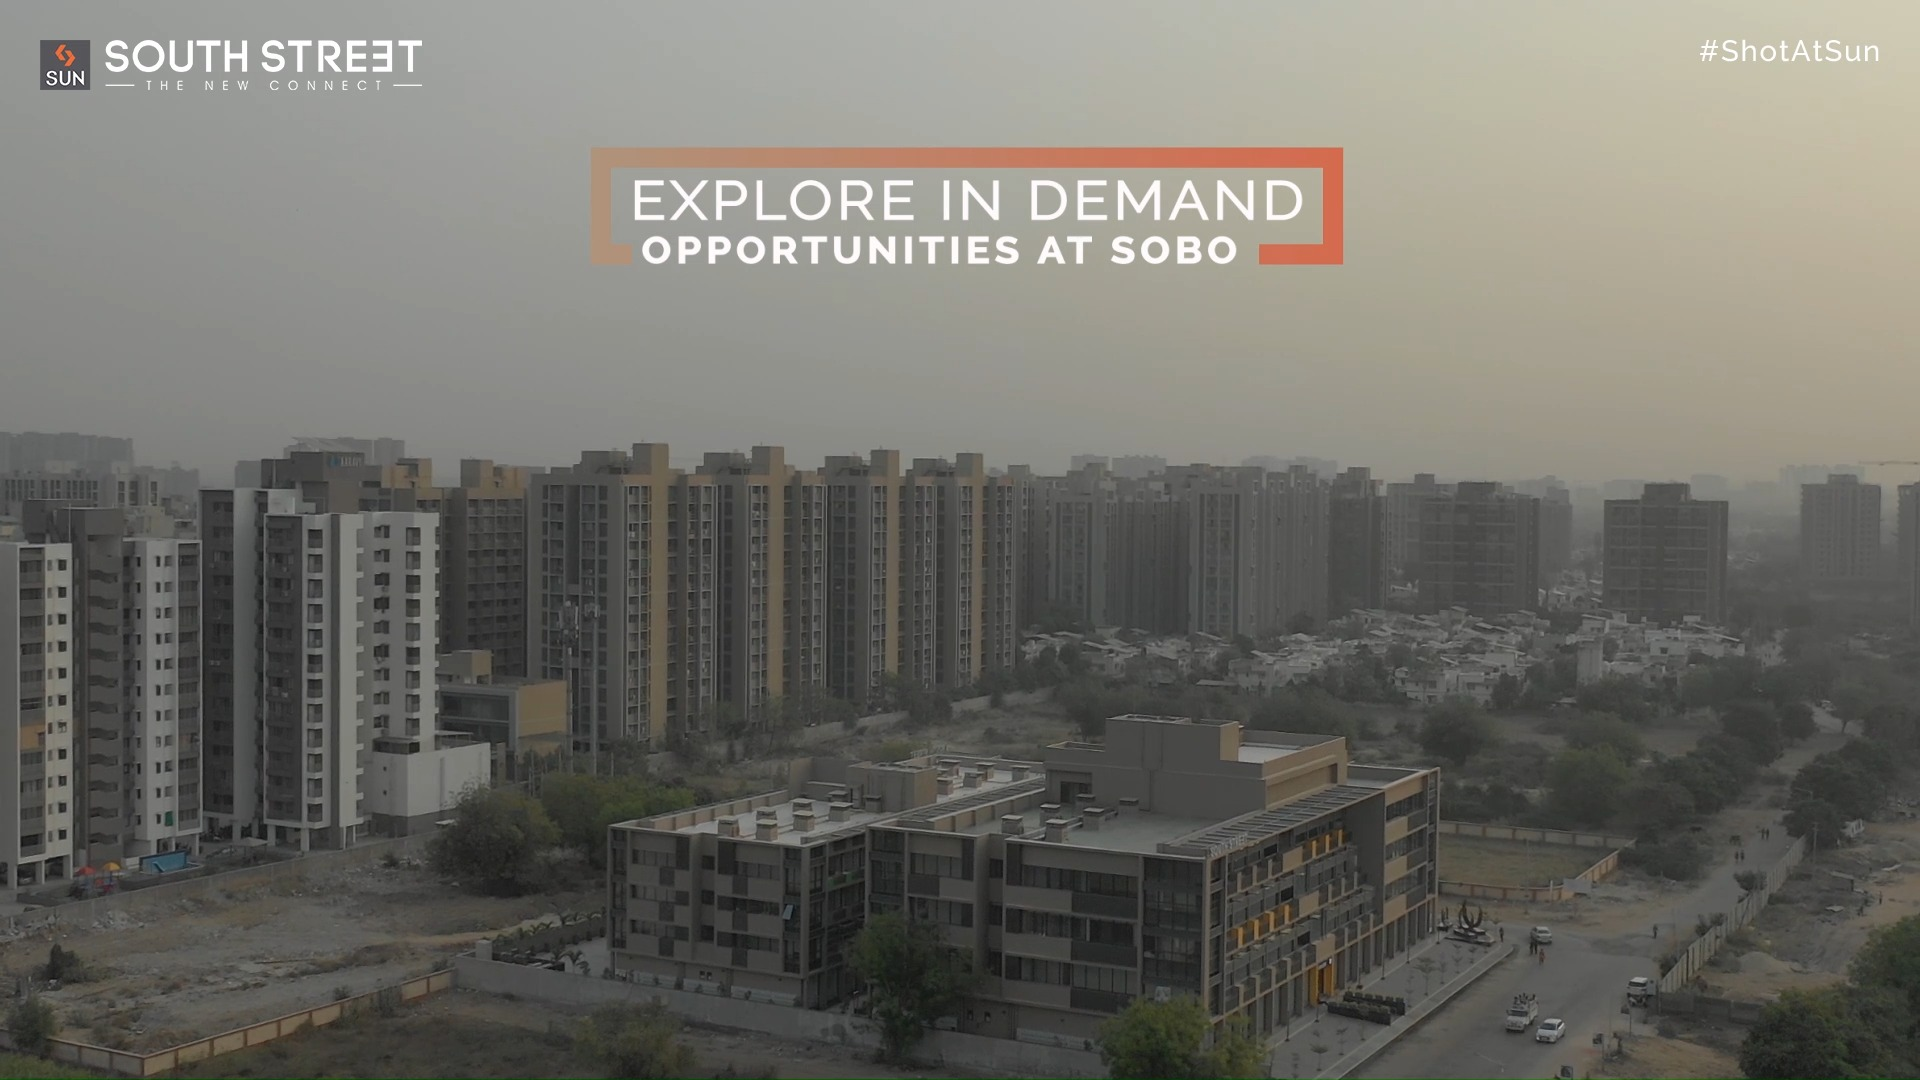 """Explore in demand opportunities with a promising cosmopolitan hub which is all set to begin your journey towards success. Sun South Street is the """"New Connect"""" designed for today's needs, hosting exclusive Retail Segments and bringing Health Care, Fashion Brands, Restaurants and much more together, under one roof.  For Details Call: +91 99789 32081  Architect: @hm.architects Location: South Bopal Status: Ready Possession Video Credits: @panjwani.vinay  #SunBuildersGroup #ShotAtSun #SunBuilders #SunSouthStreet #Retail #Showrooms #SouthBopal #SOBO #ReadyPossession #BuildingCommunities #realestateahmedabad"""